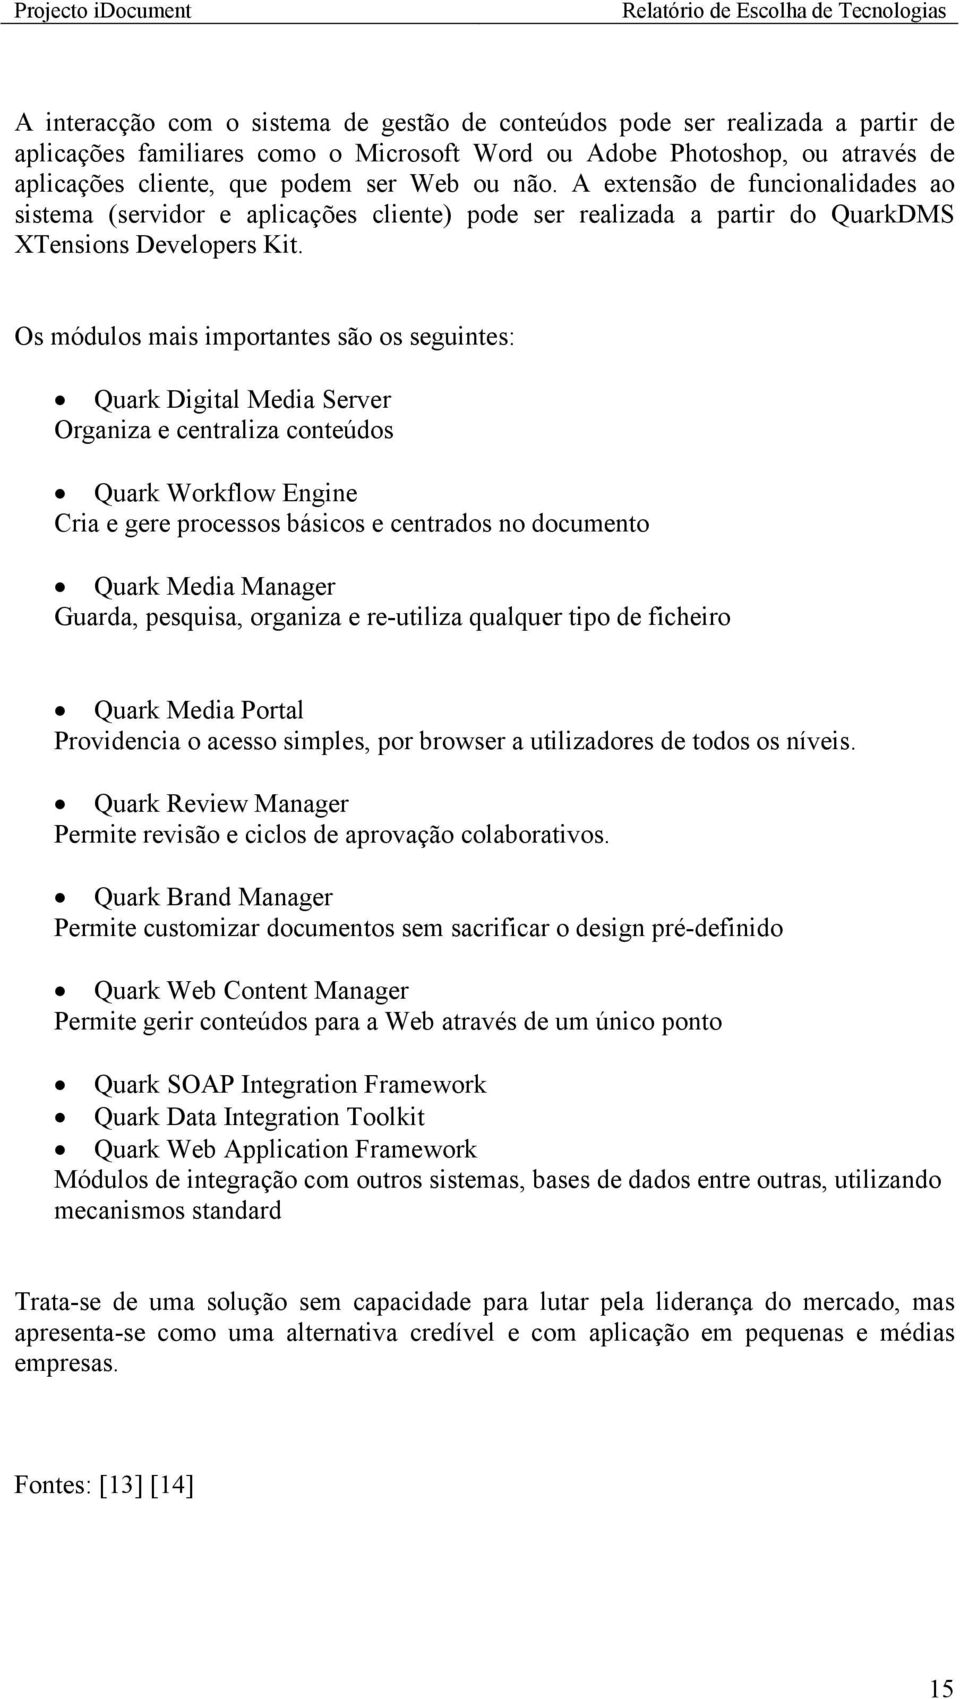 Os módulos mais importantes são os seguintes: Quark Digital Media Server Organiza e centraliza conteúdos Quark Workflow Engine Cria e gere processos básicos e centrados no documento Quark Media